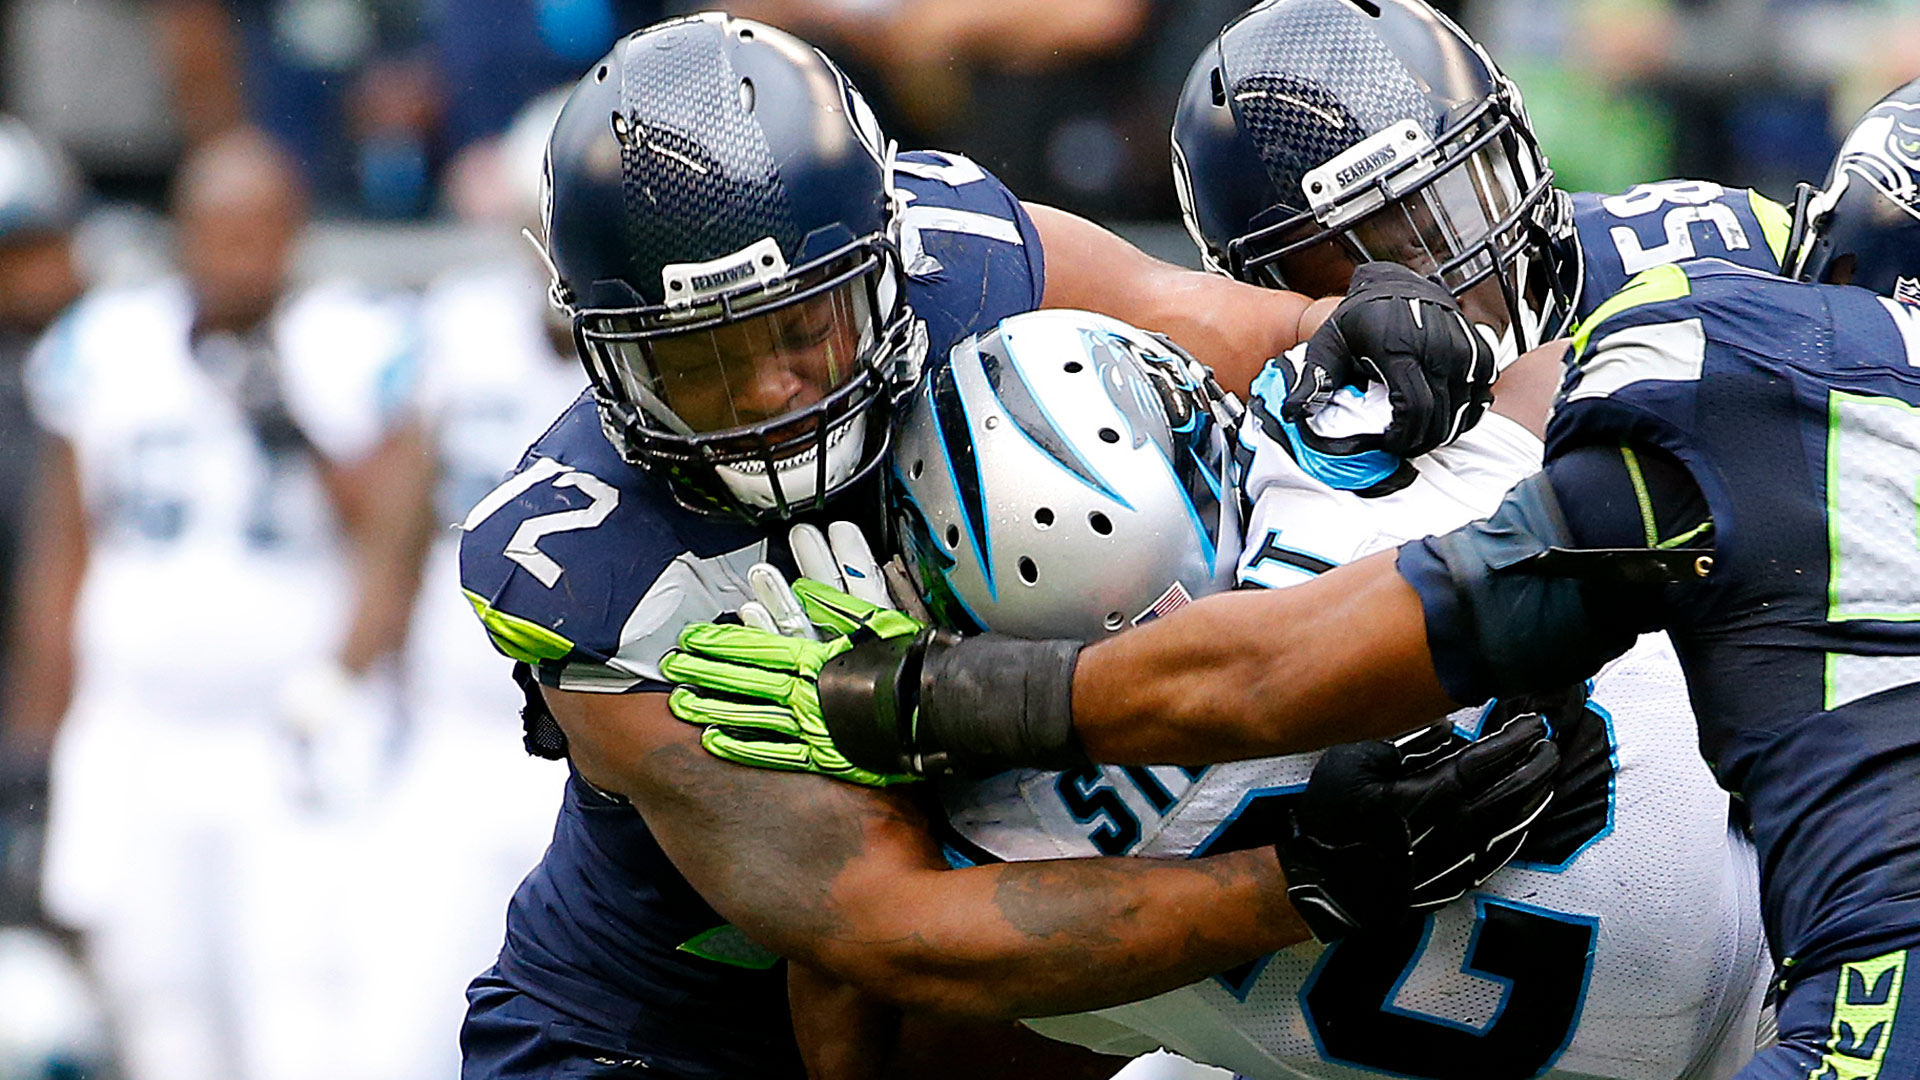 Seattle Seahawks defensive end Michael Bennett (72), safety Earl Thomas (29) and linebacker K.J. Wright (50) team up to stop Carolina Panthers running back Jonathan Stewart (28) during an NFL game  at CenturyLink Field on October 18, 2015. The Panthers defeated the Seahawks 27-23. (Kevin Terrell via AP)